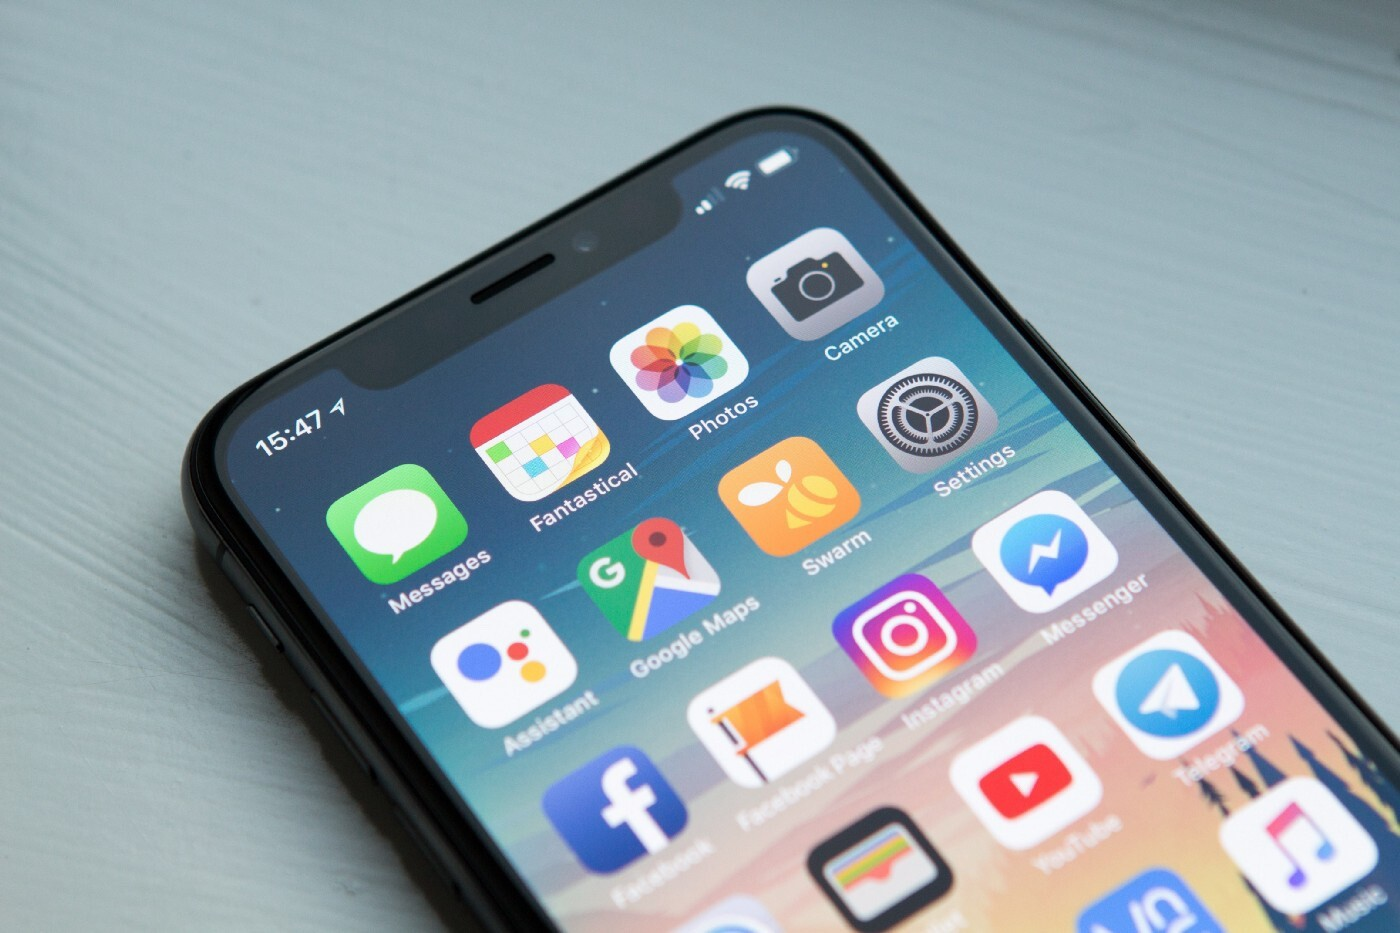 How to Change the Default Apps on iPhone in iOS 14